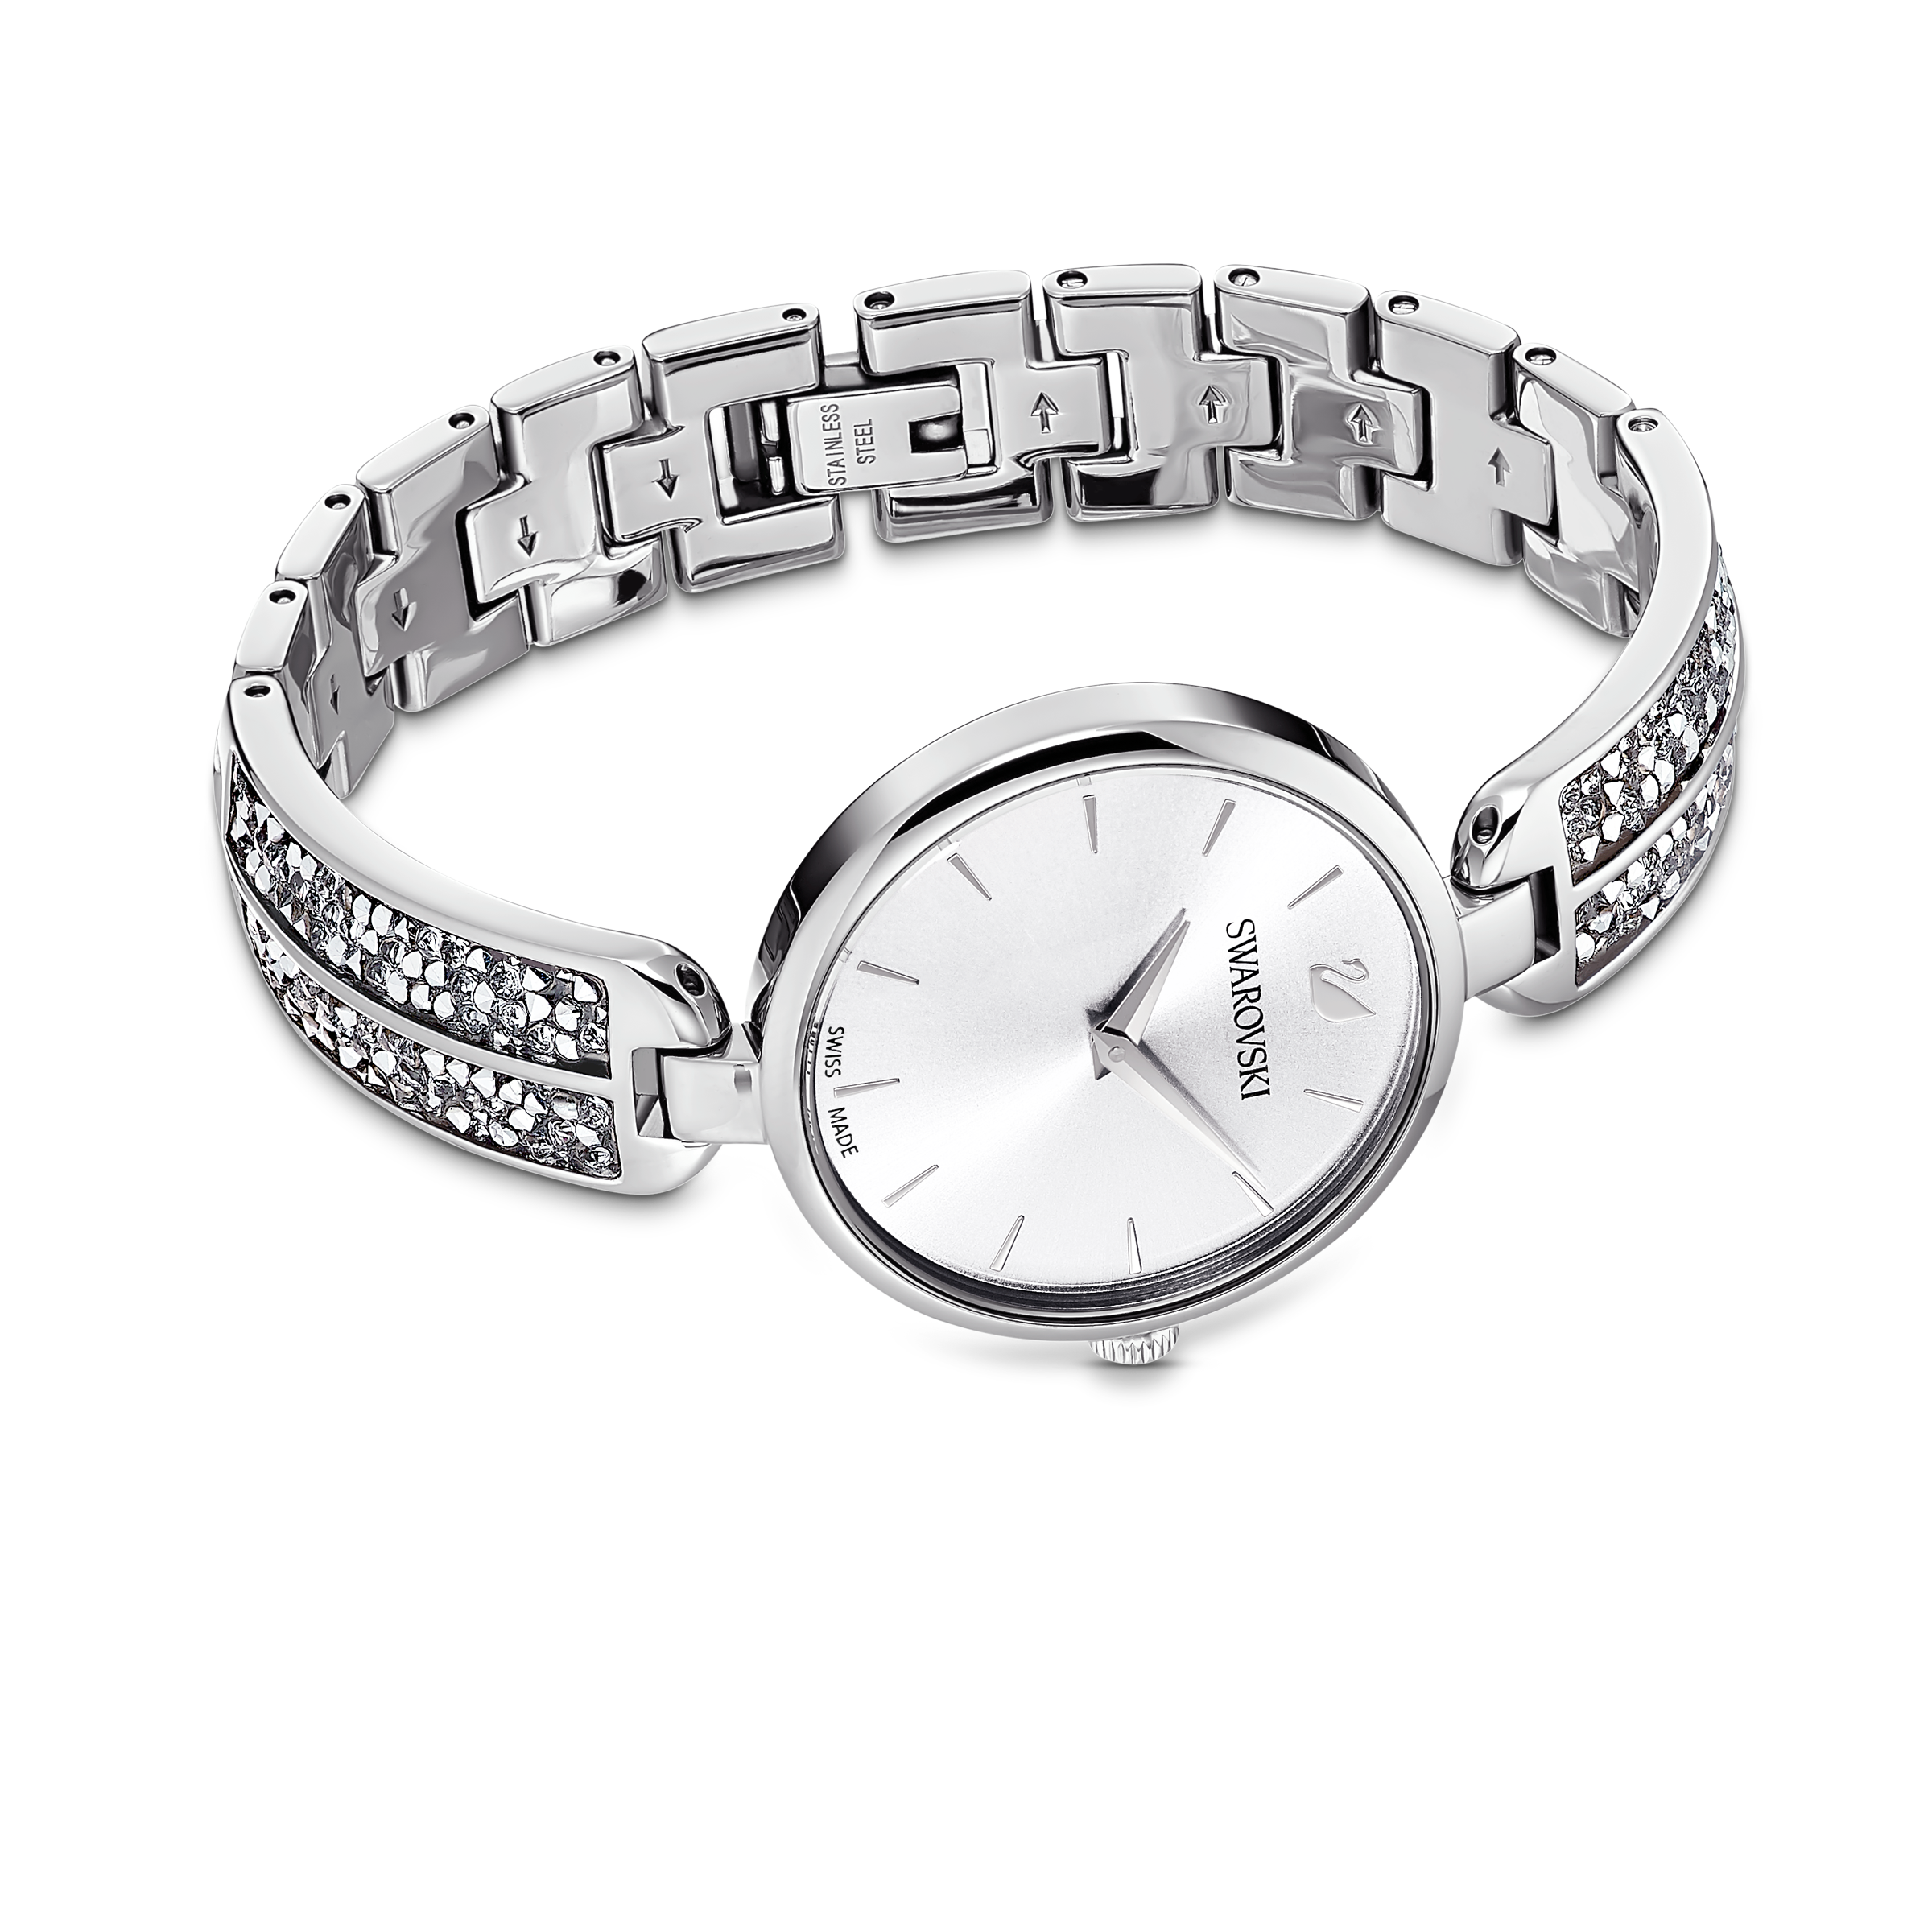 Dream Rock Watch, Metal Bracelet, Silver tone, Stainless steel